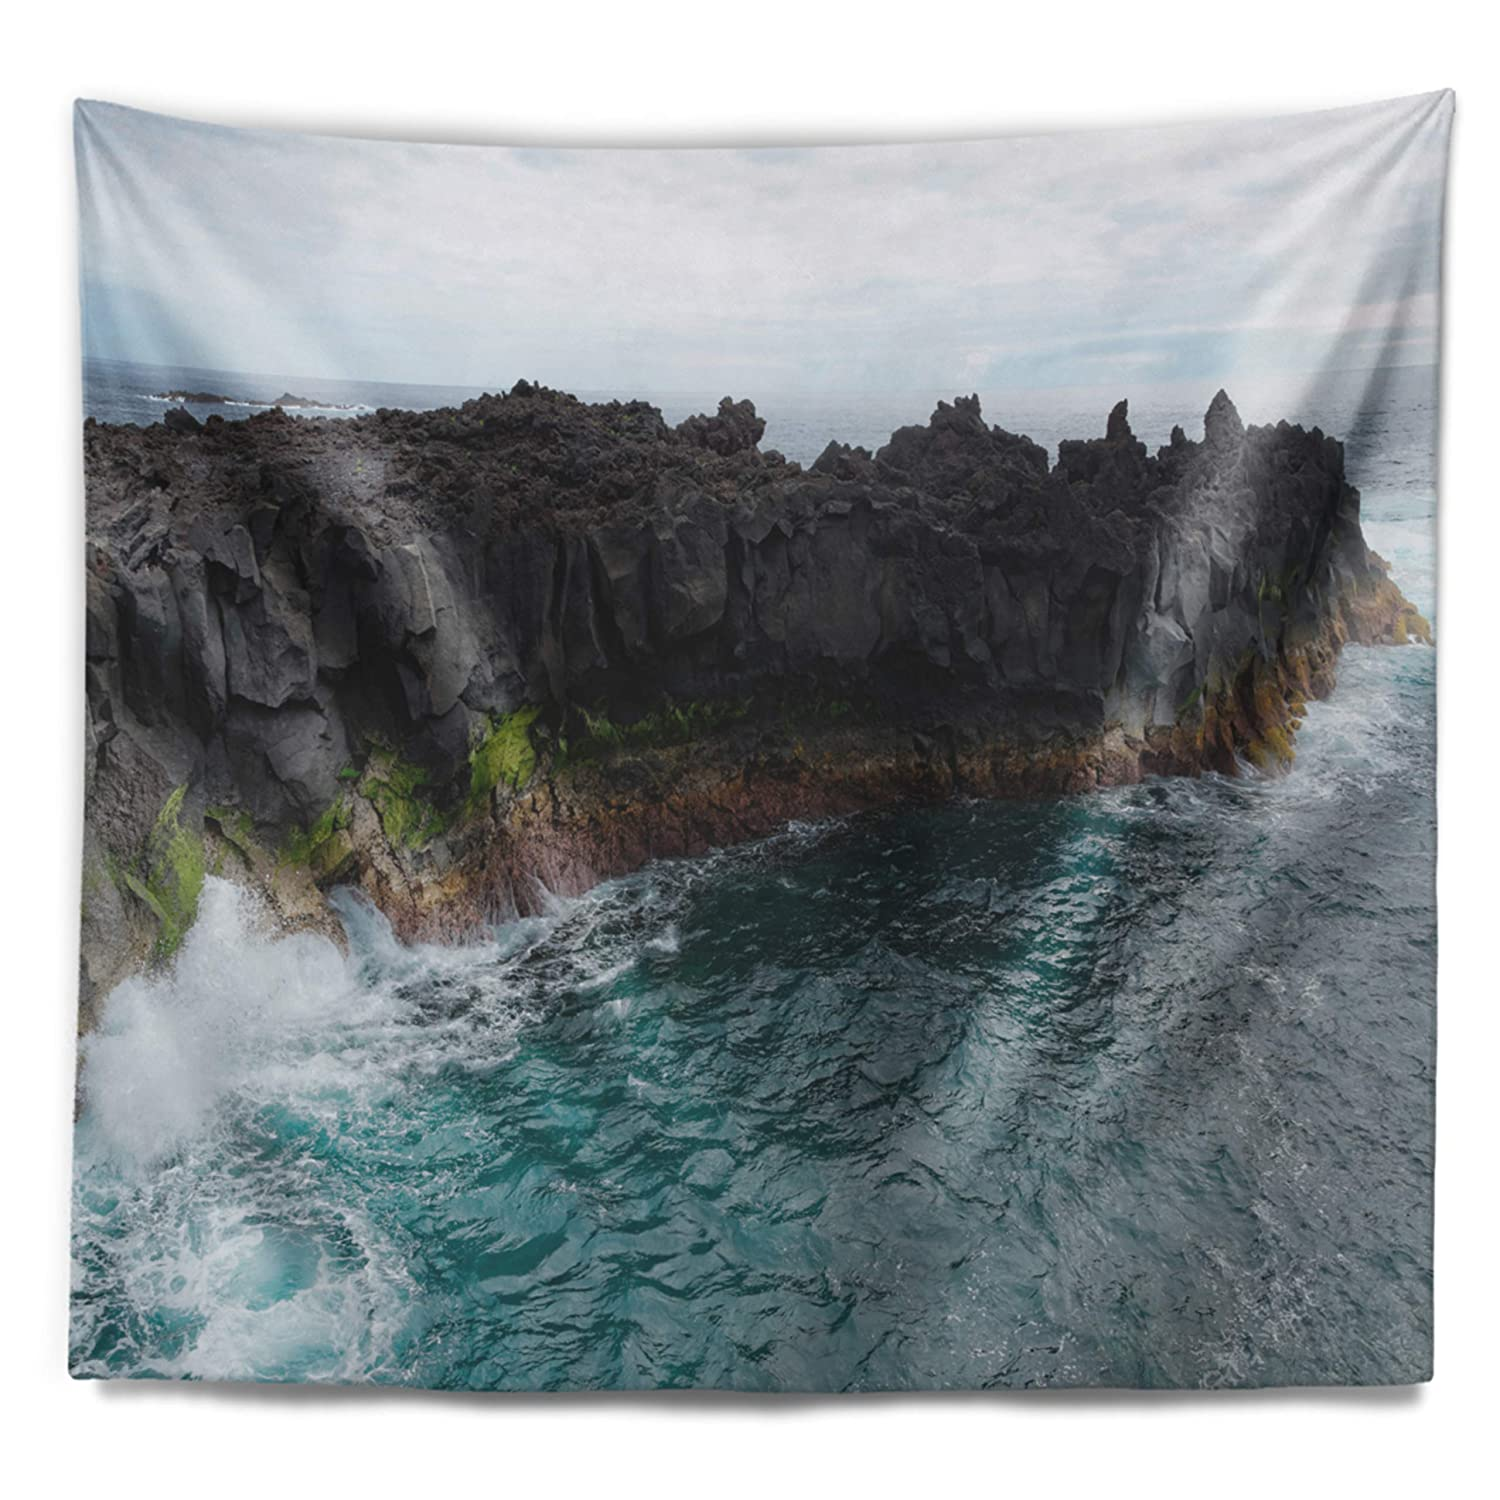 Created On Lightweight Polyester Fabric 39 in x 32 in Designart TAP11162-39-32  Rocky Coast with Moss in Azores Seashore Blanket D/écor Art for Home and Office Wall Tapestry Medium